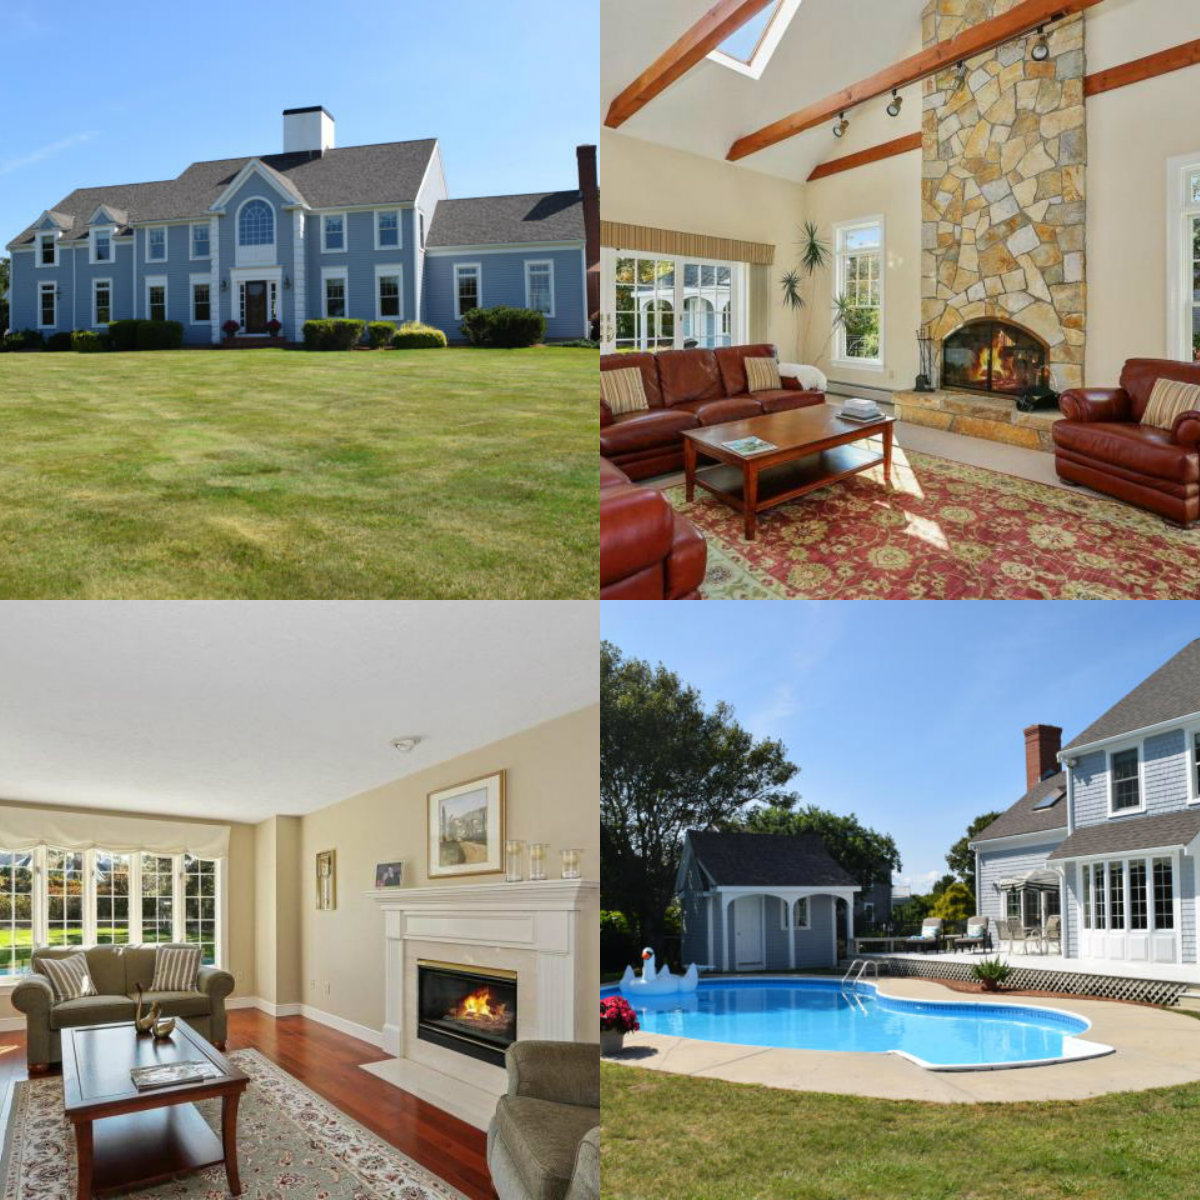 Images of 40 Torrey Road by Sandy Neck on Cape Cod MA